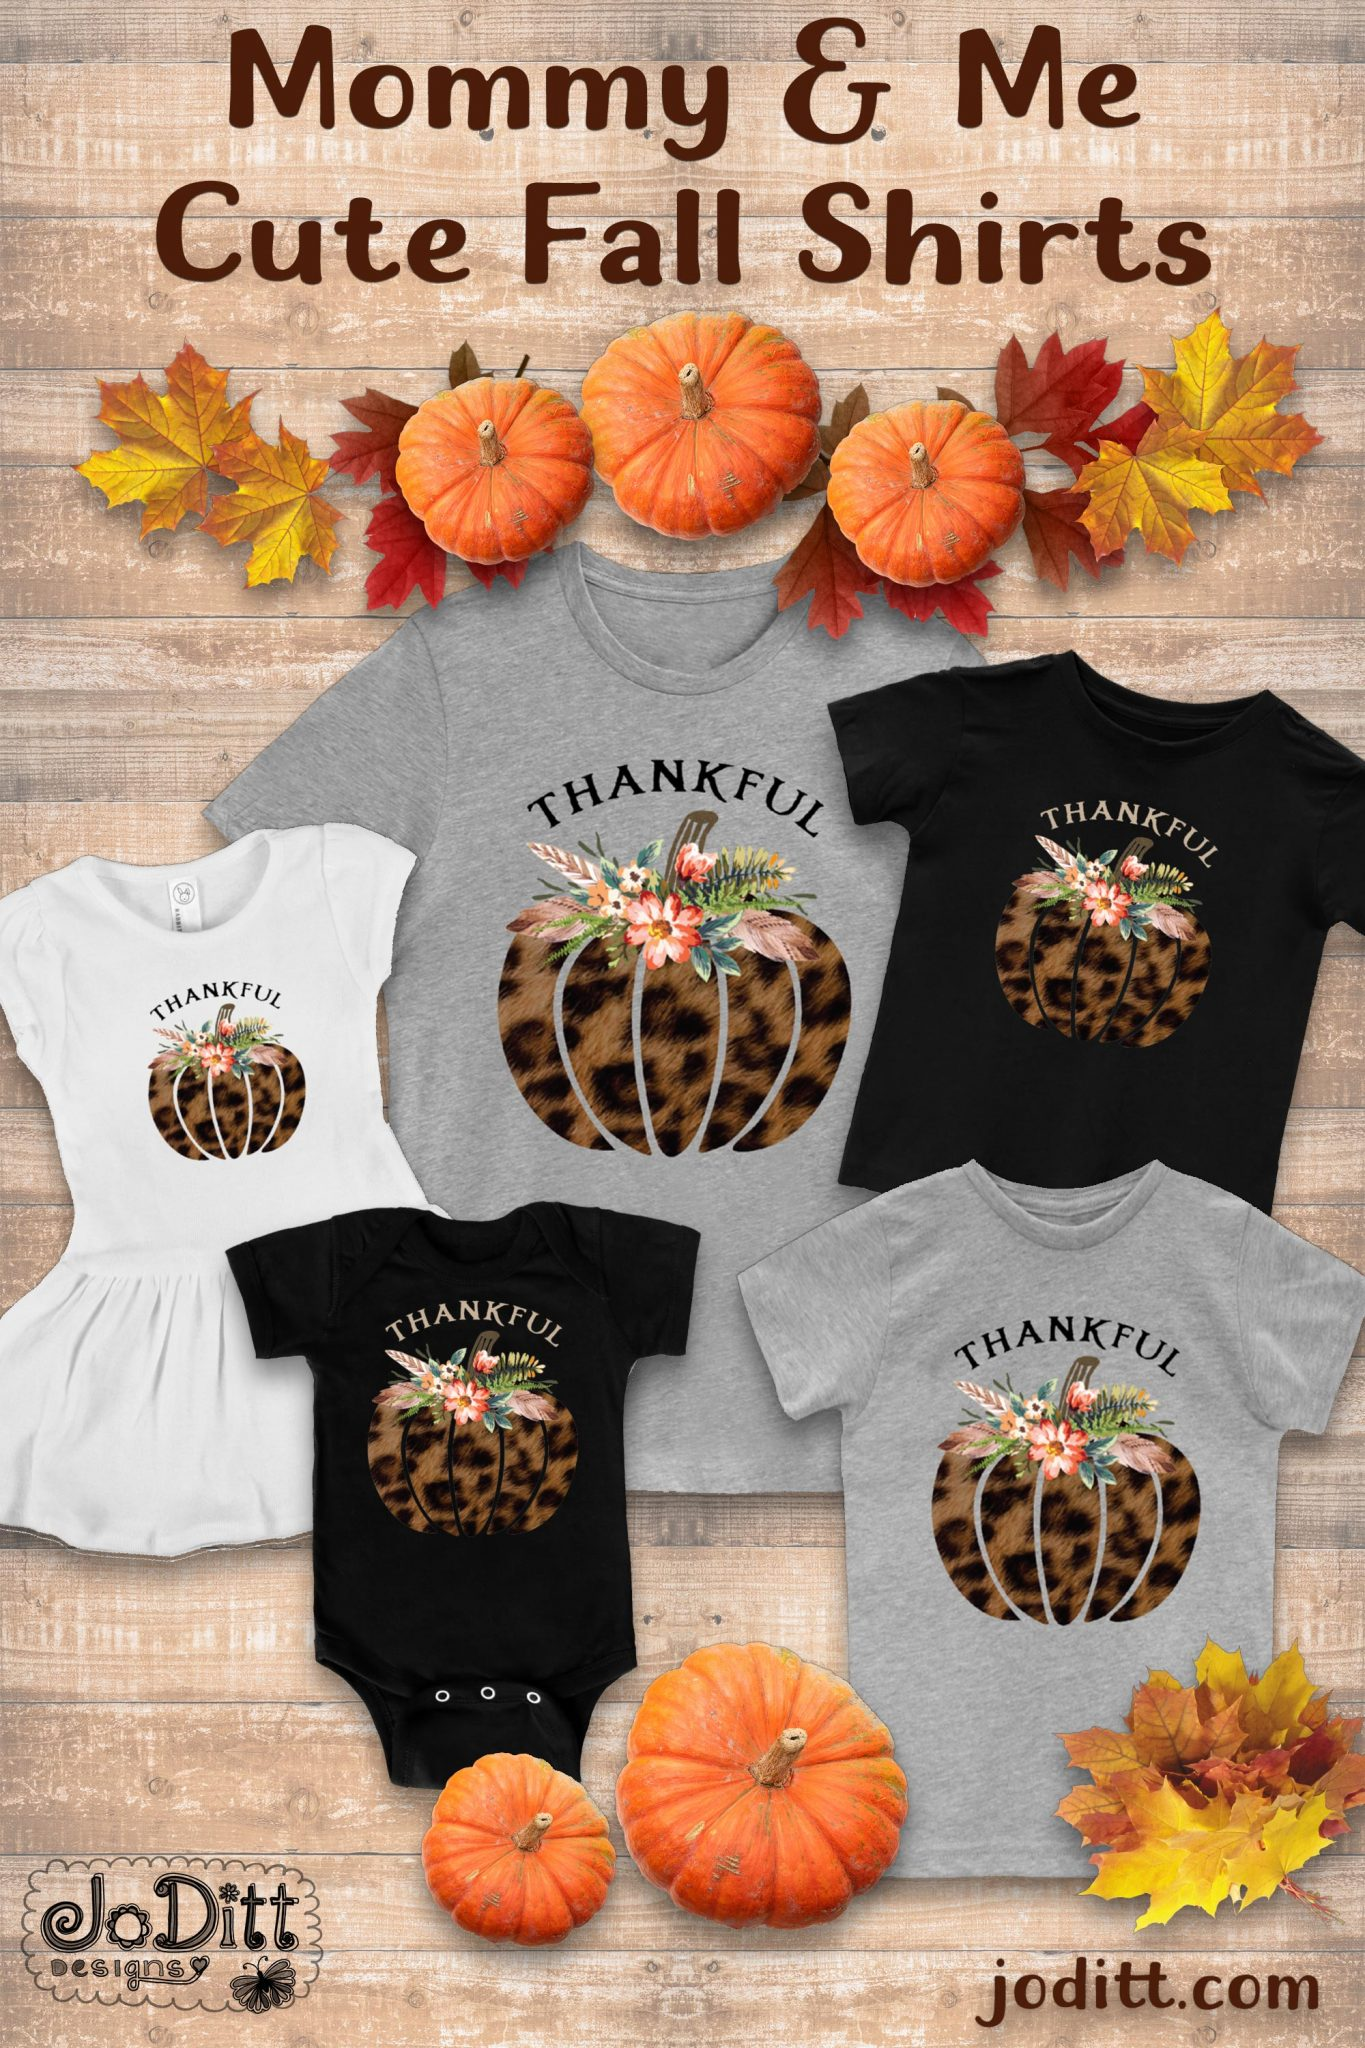 mommy-and-me-shirts-leopard-pumpkin